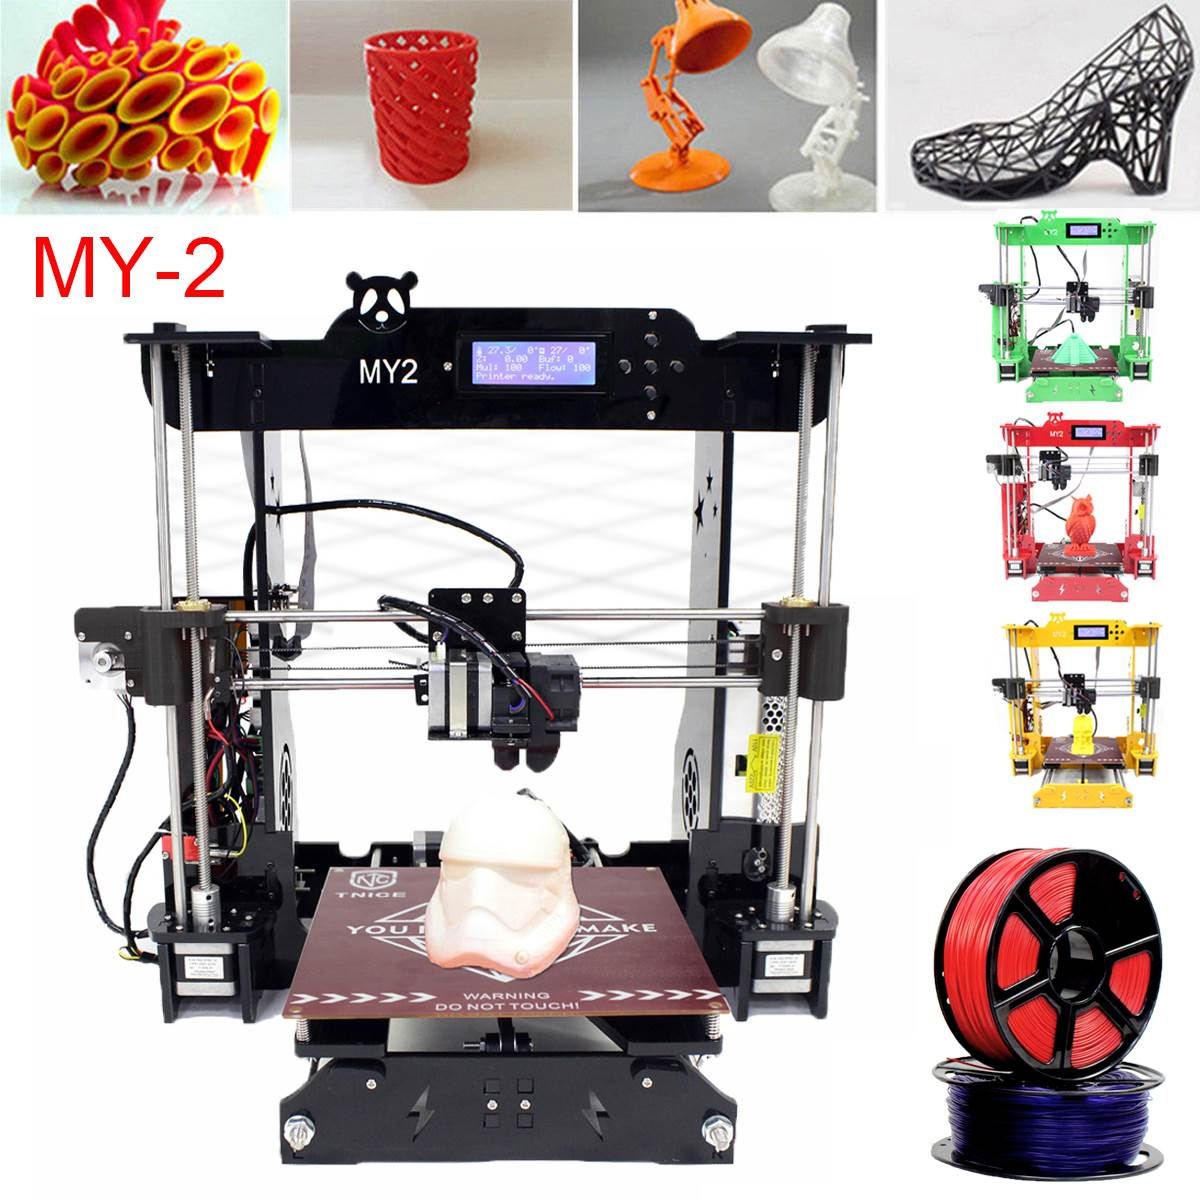 MY-2 DIY 3D Printer Kit Large Printing Area 3D Printing Convenient Easy Printer Black/Red/Green/Yellow